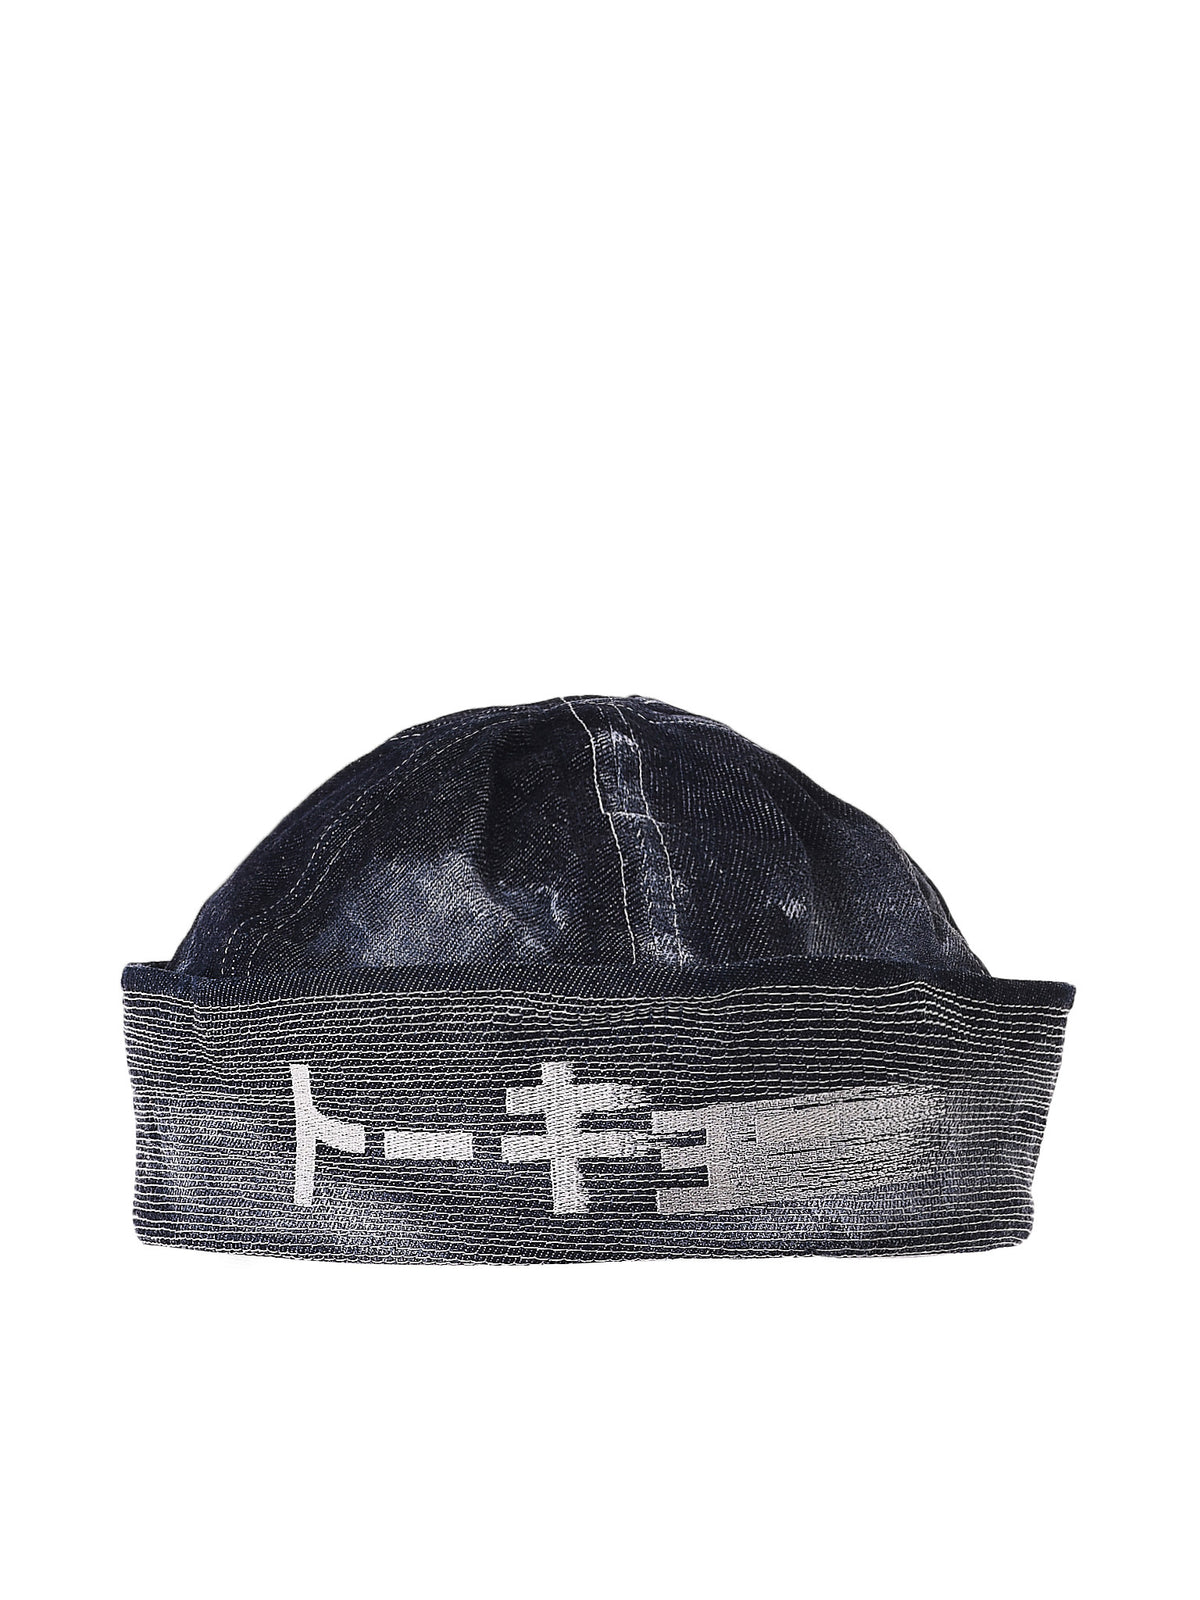 Graphic Sailor's Hat (JUN01612-NAVY)